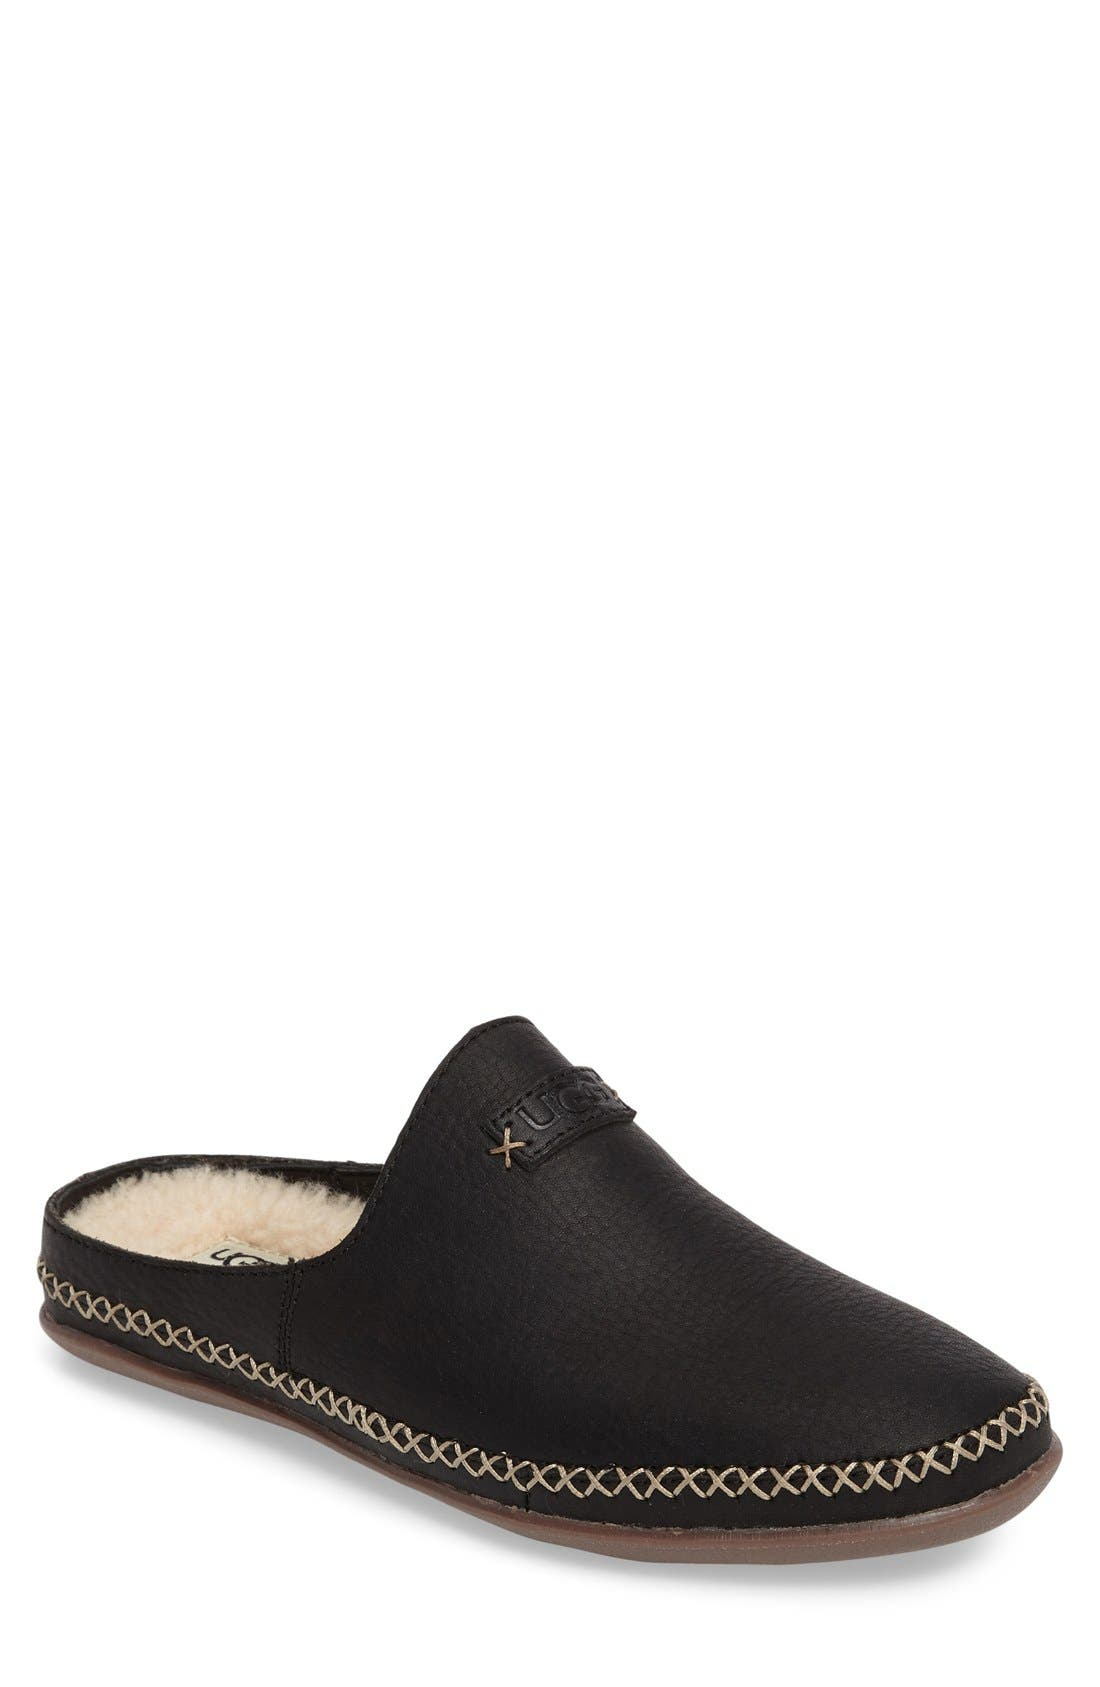 Tamara Slipper,                         Main,                         color, Black Leather